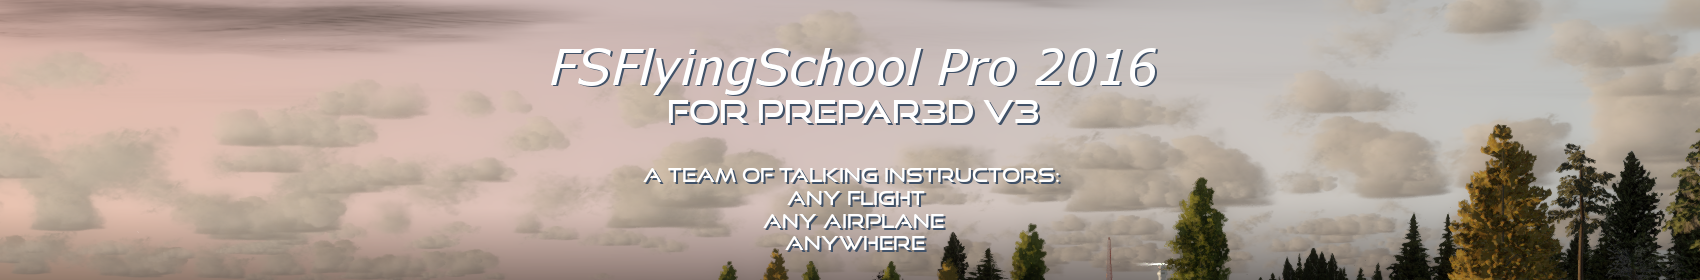 fsflyingschool_banner